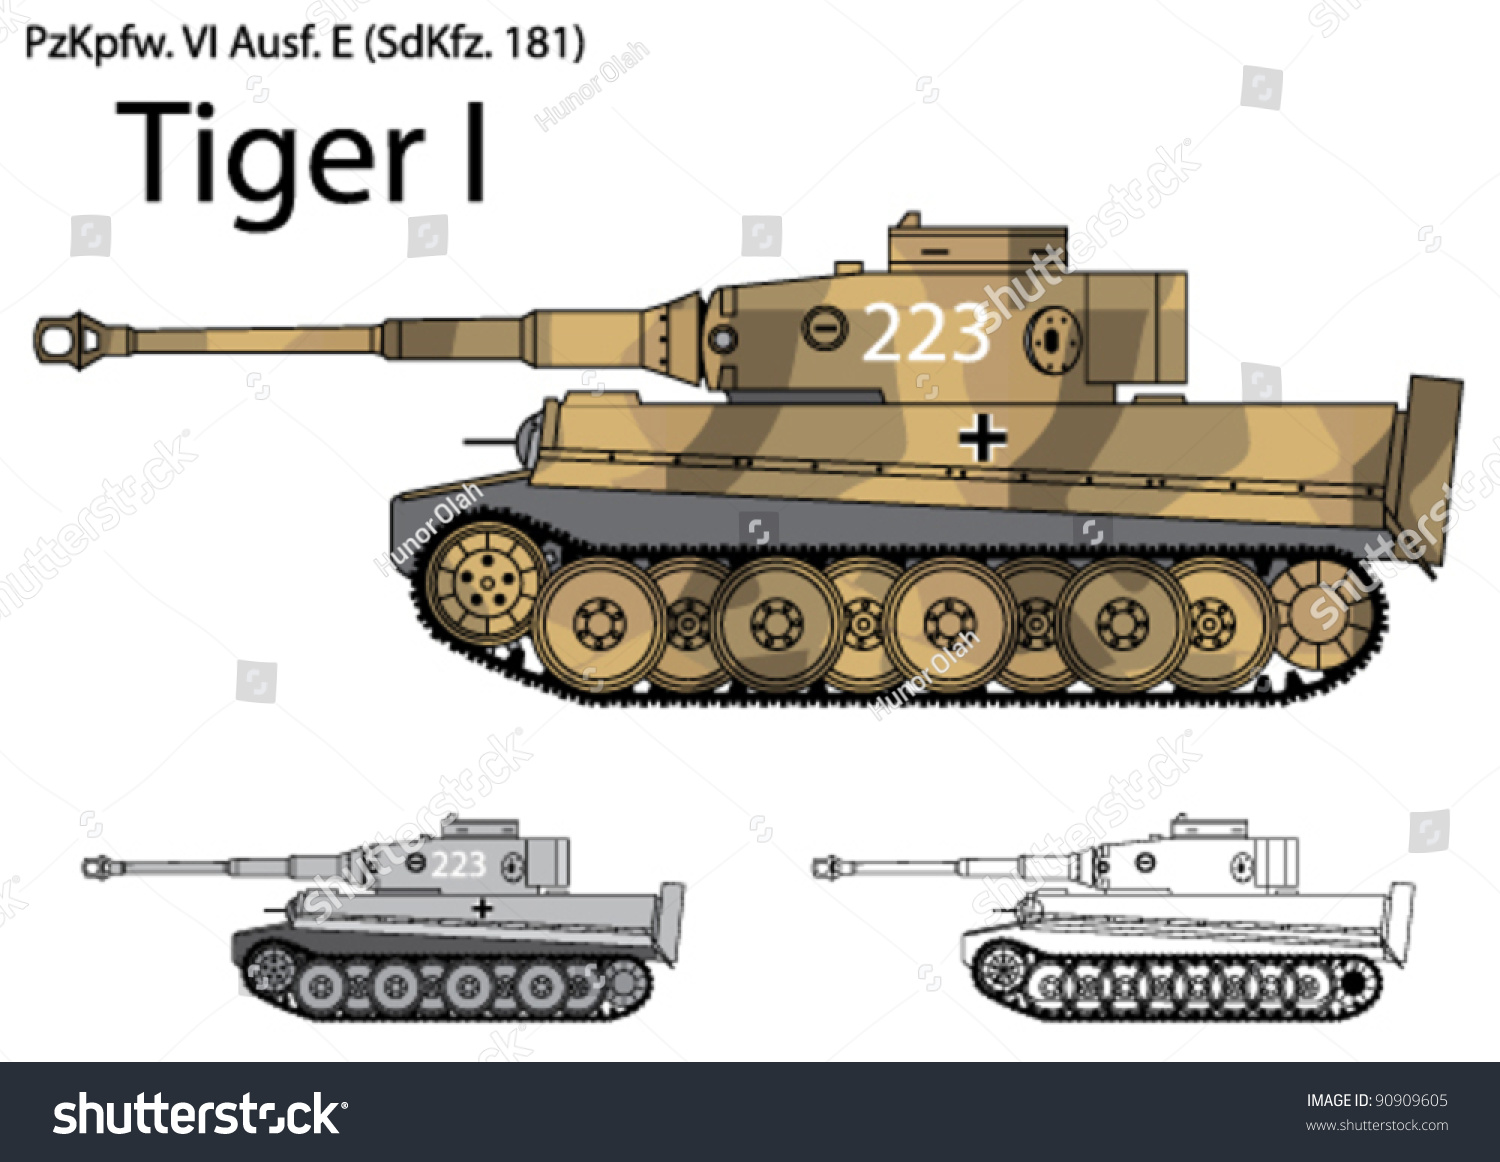 tiger tank side view 2 choice image